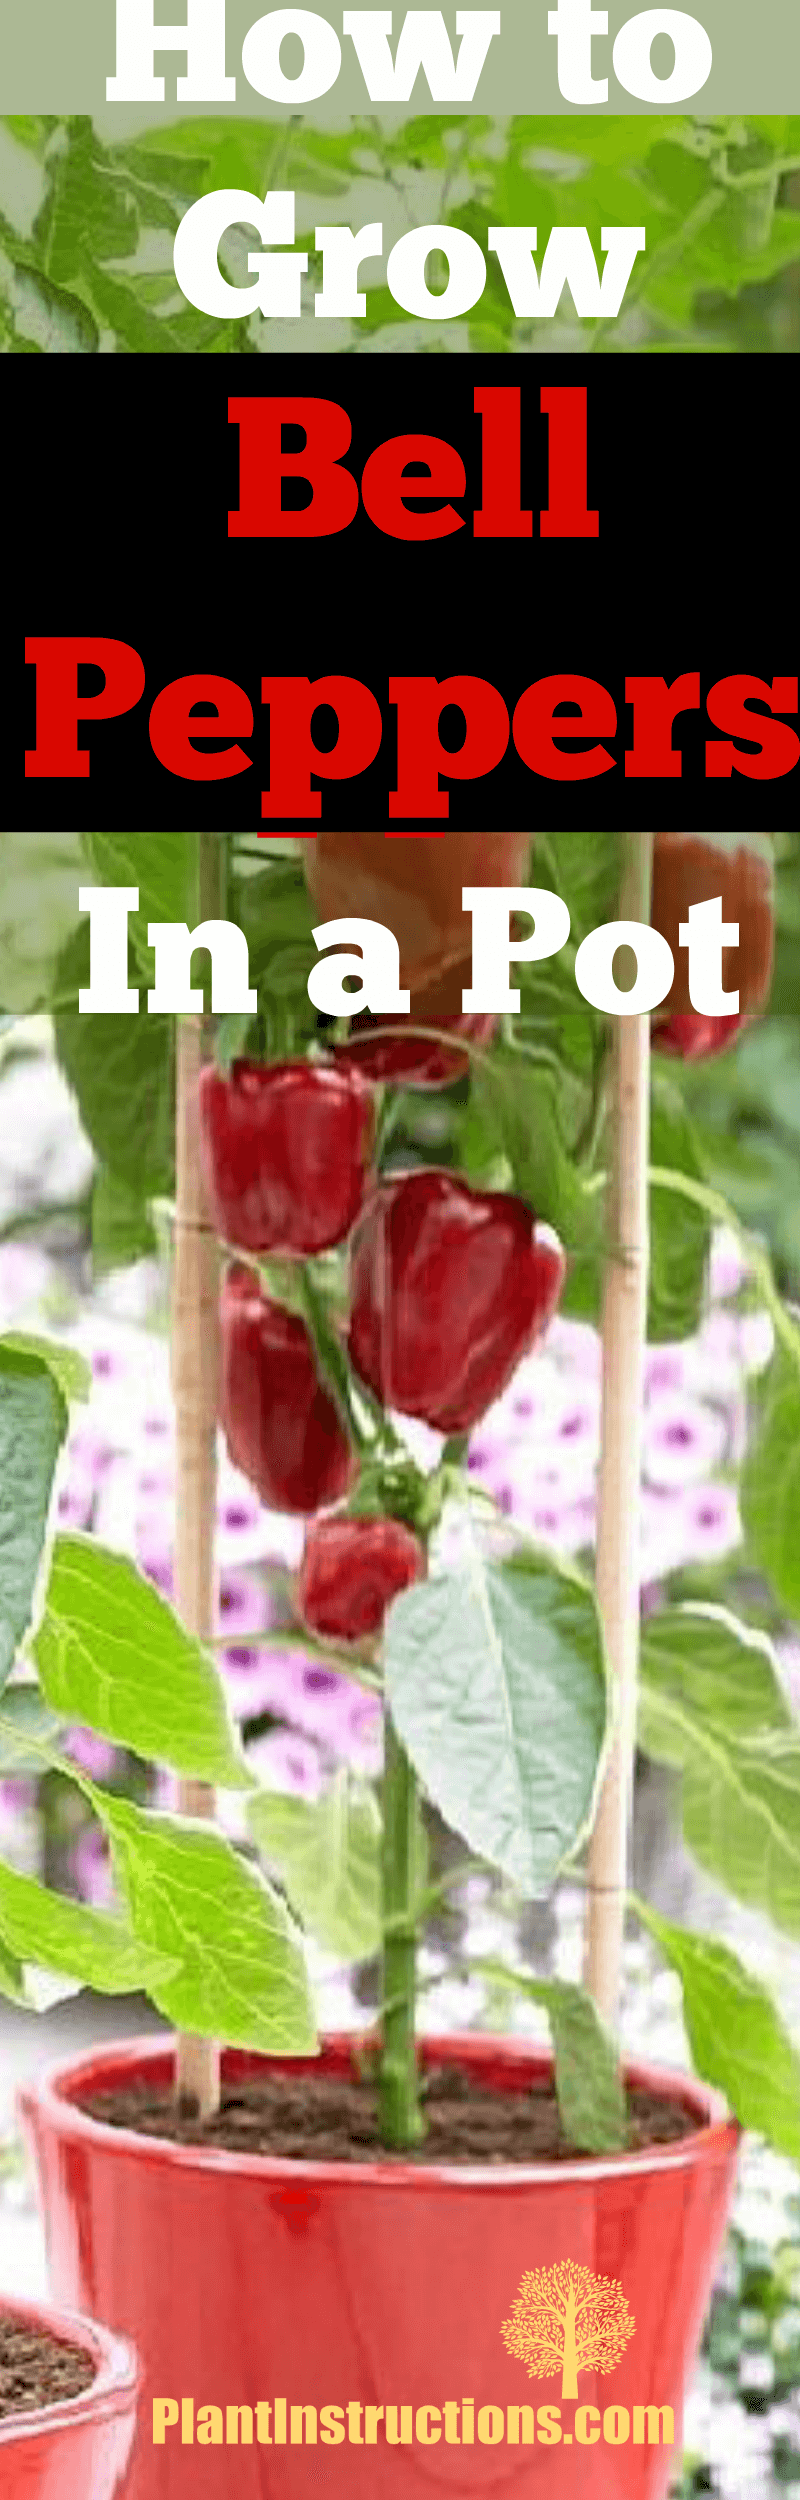 grow bell peppers in a pot